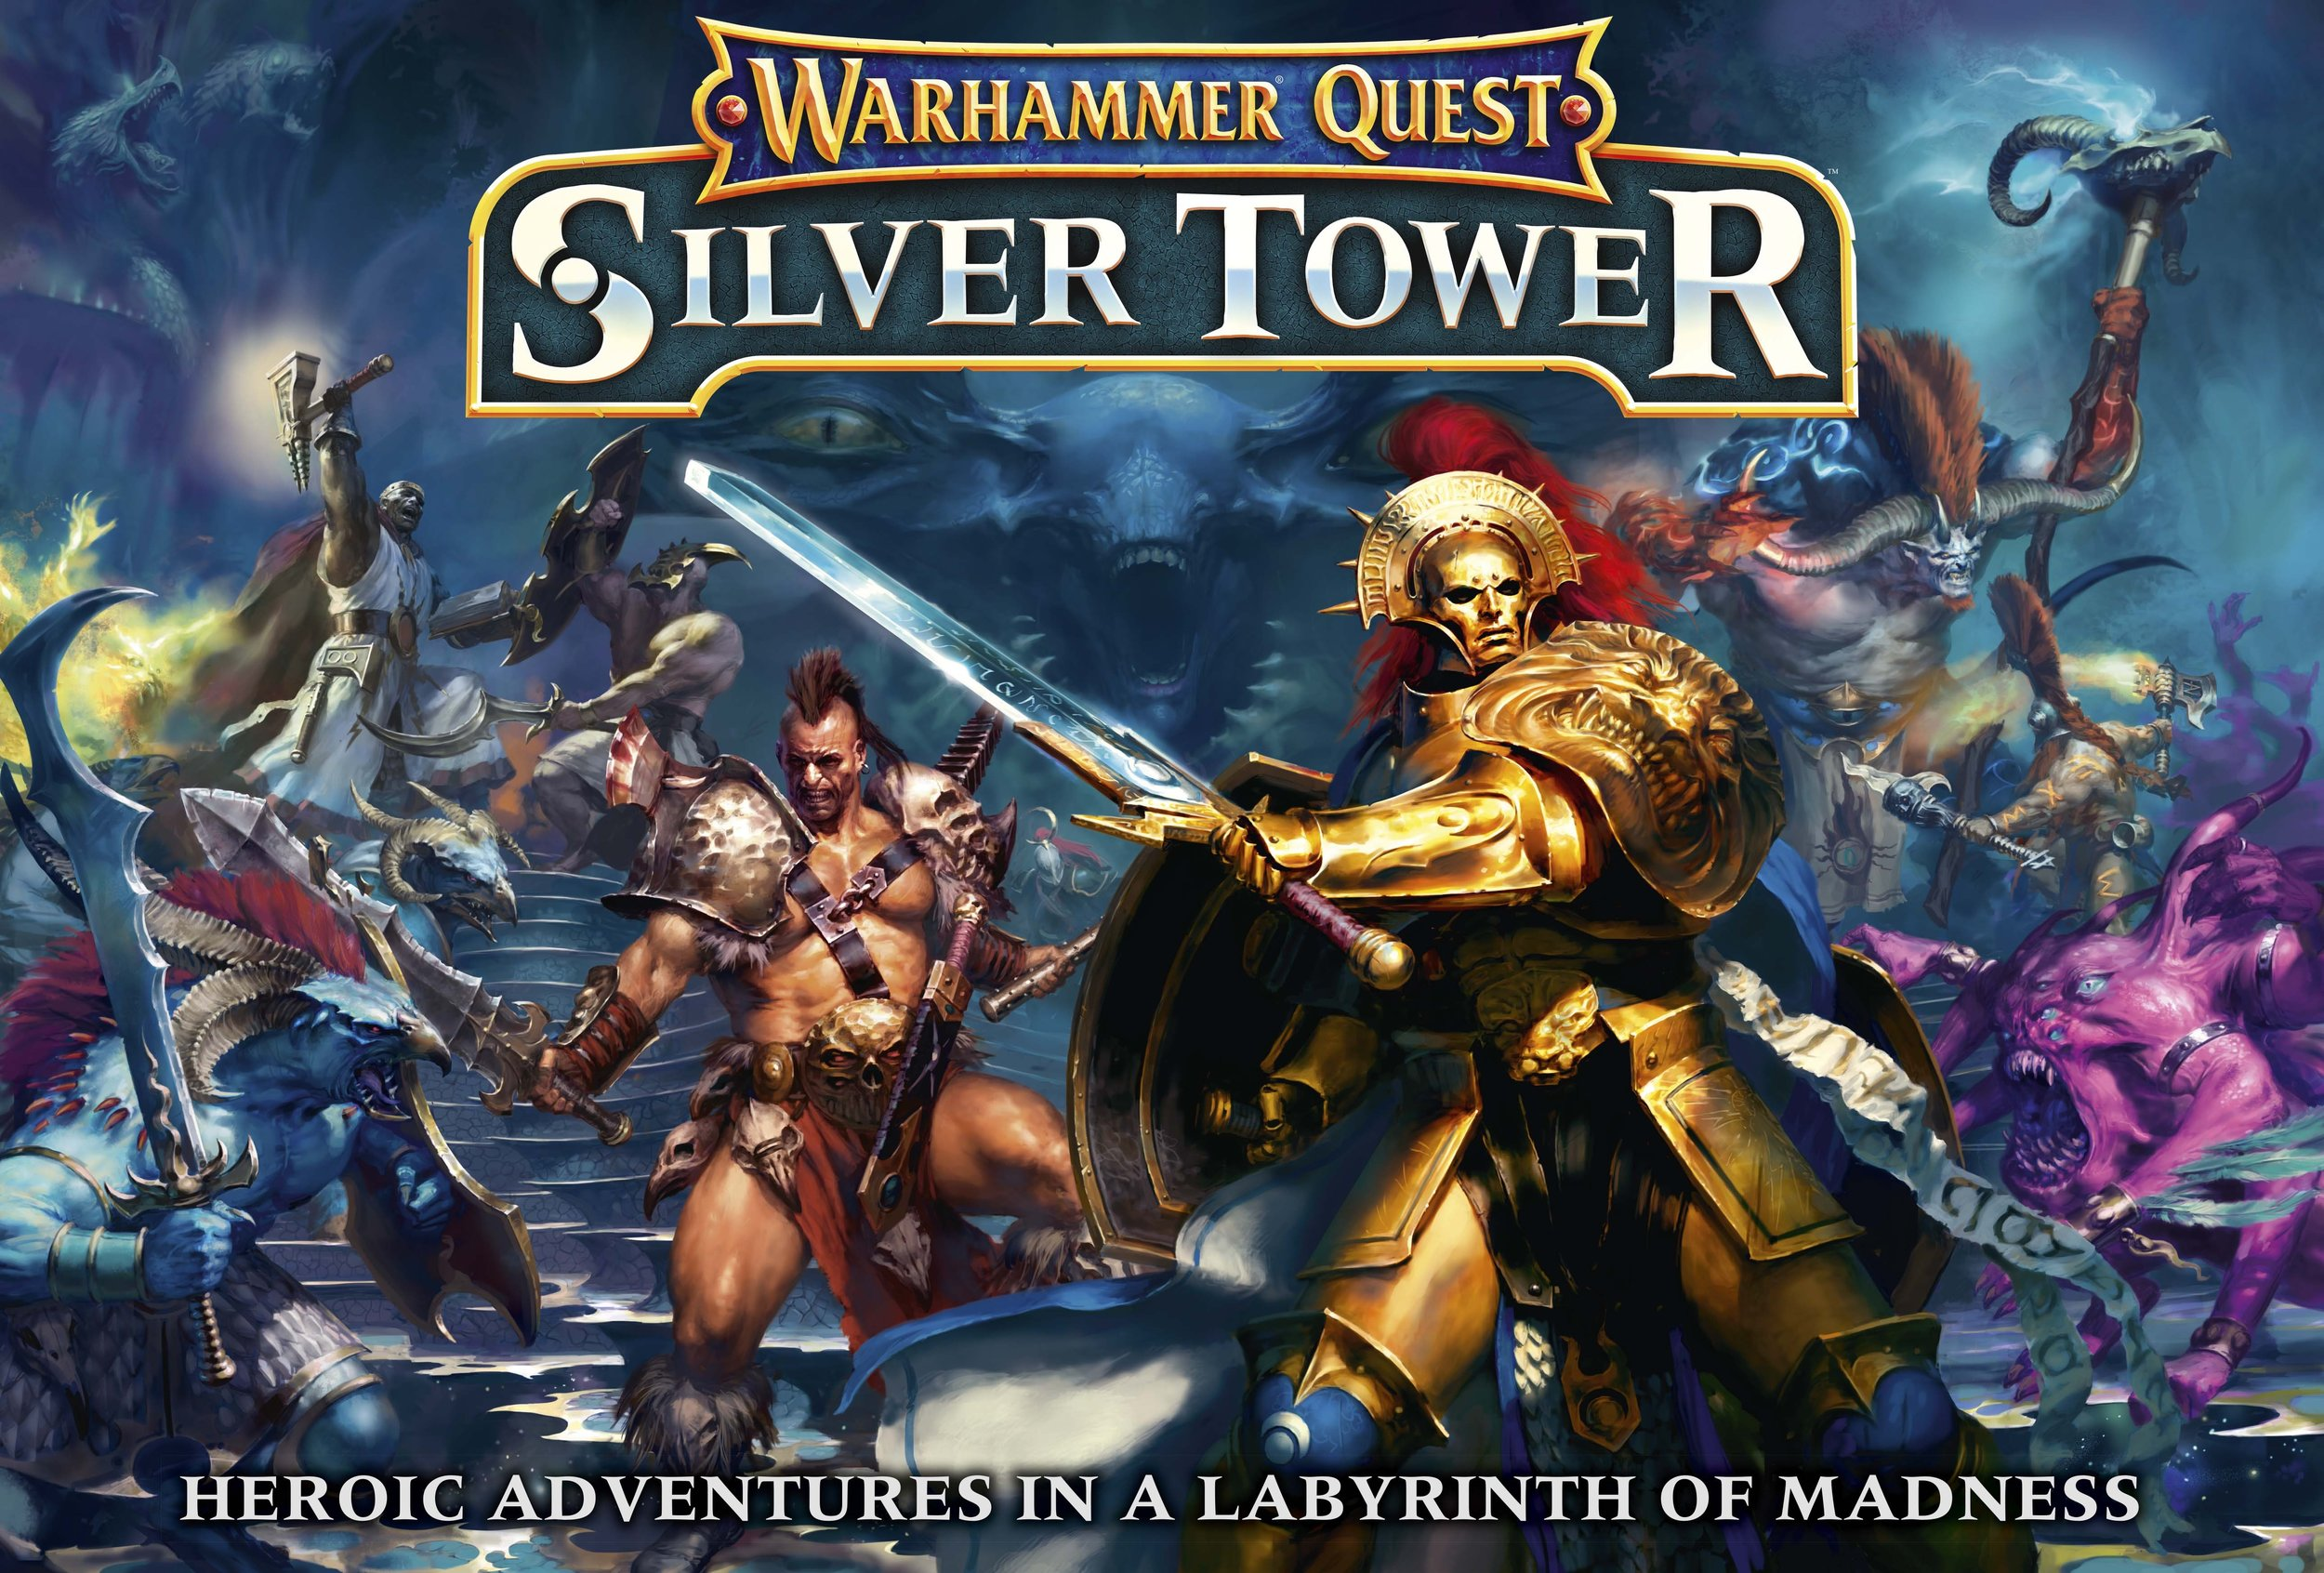 warhammer-quest-silver-tower-1